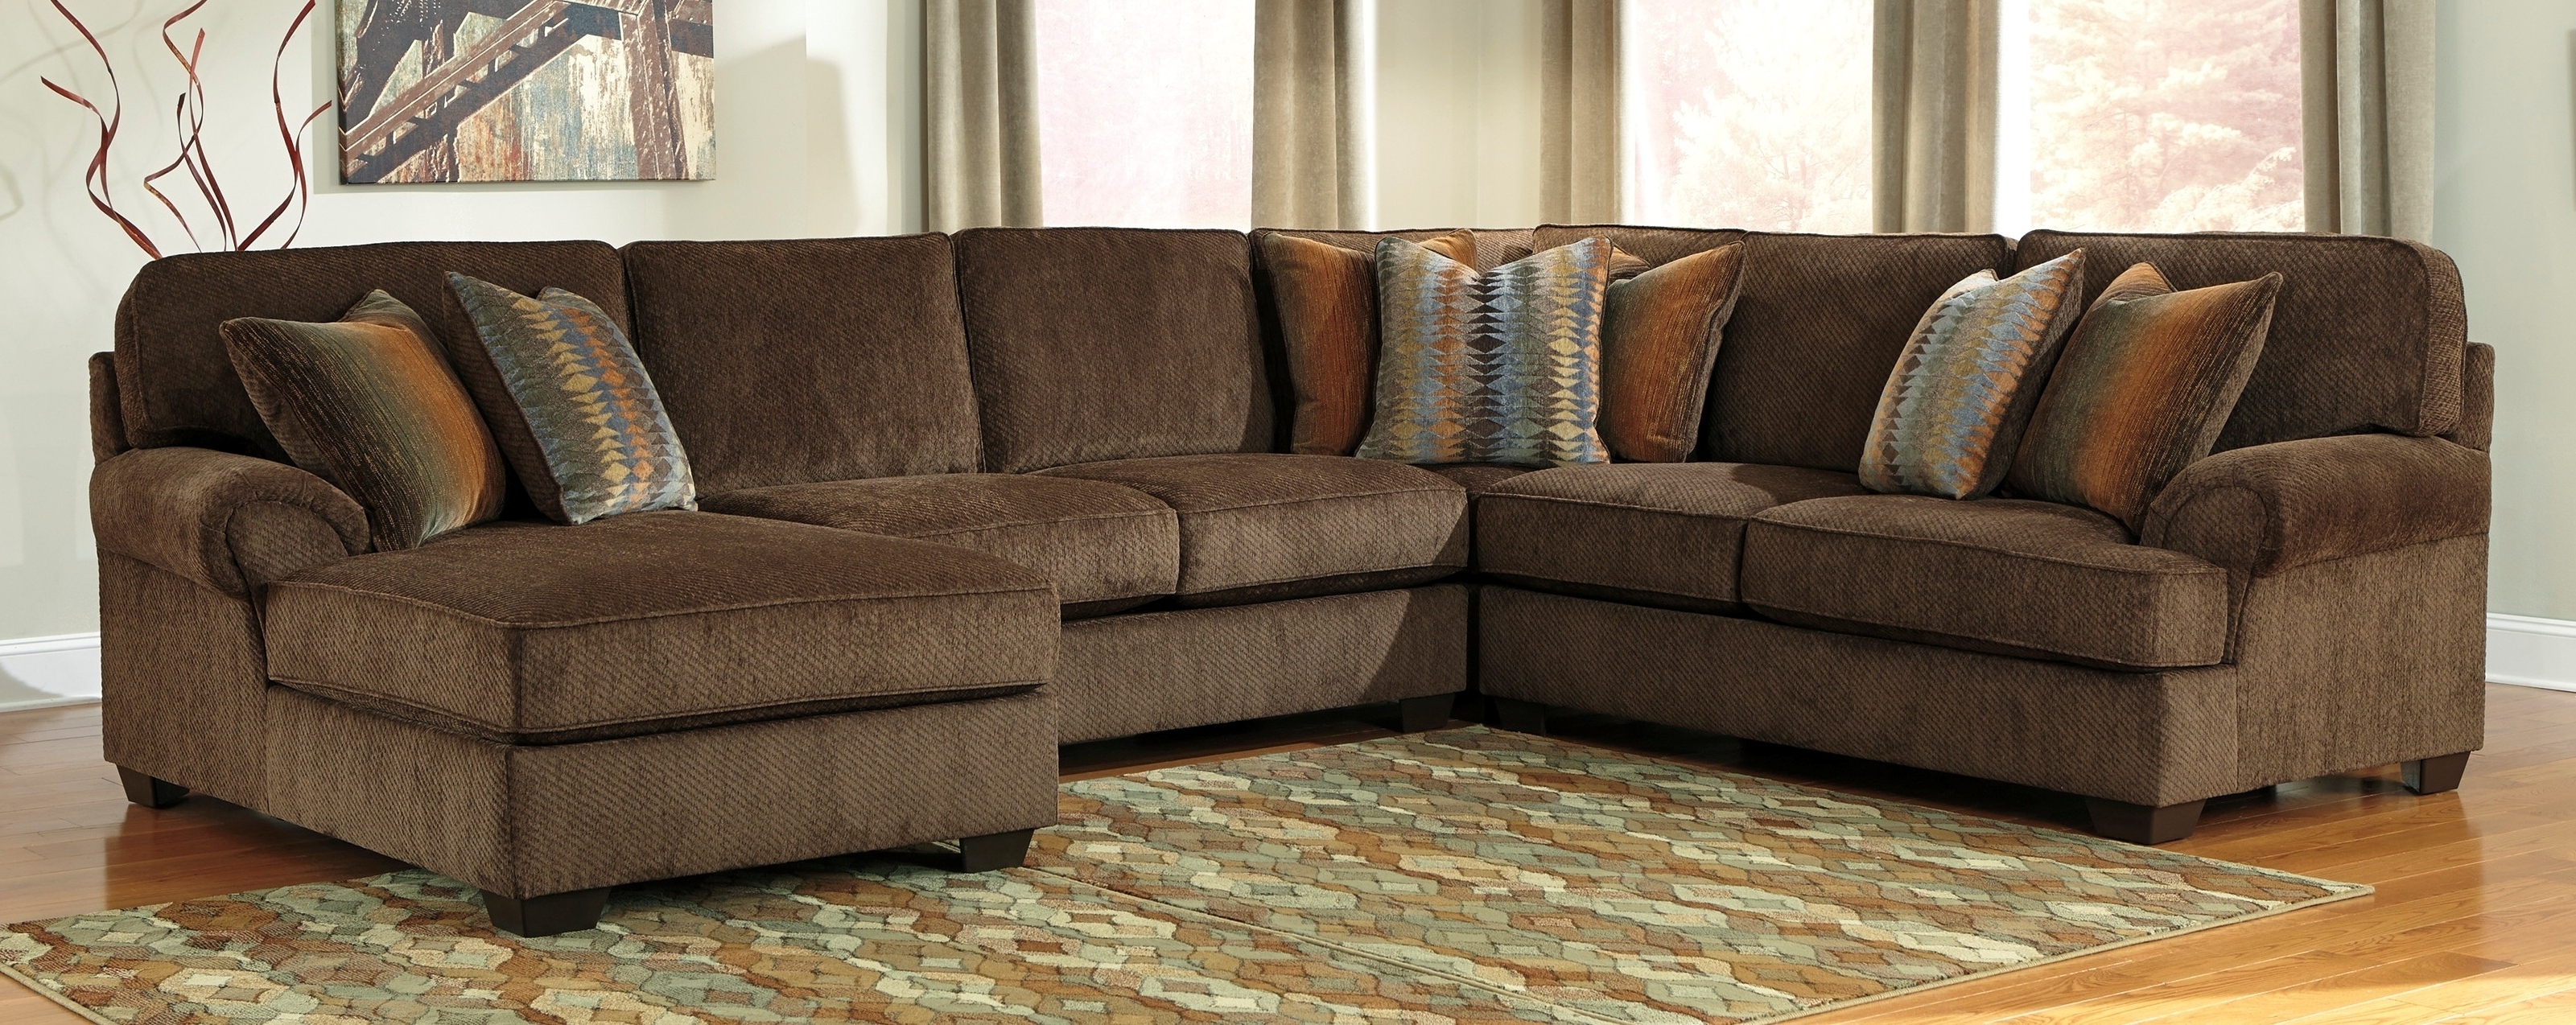 Trendy Buy Ashley Furniture 9171055 9171077 9171034 9171017 Denning Inside Ashley Furniture Sectionals With Chaise (View 14 of 15)